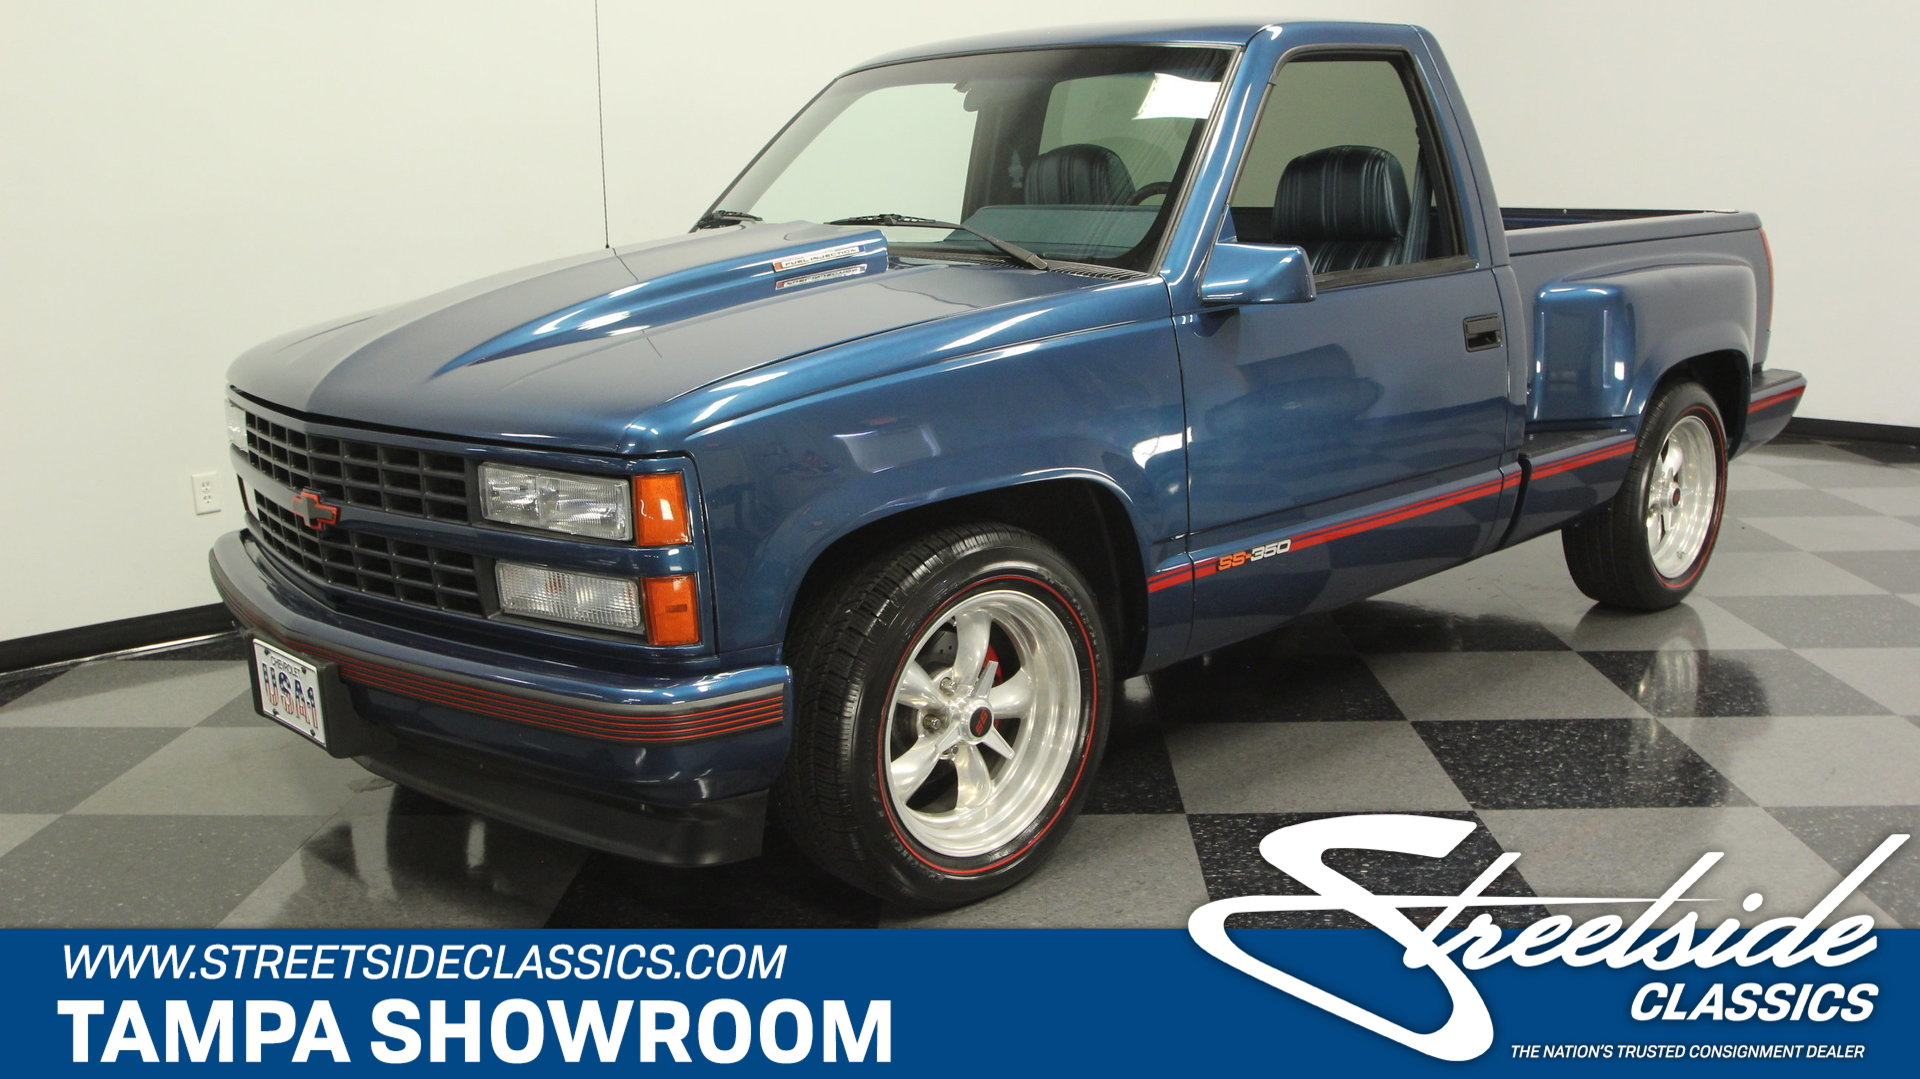 For Sale: 1990 Chevrolet Silverado. Spincar view. Play Video